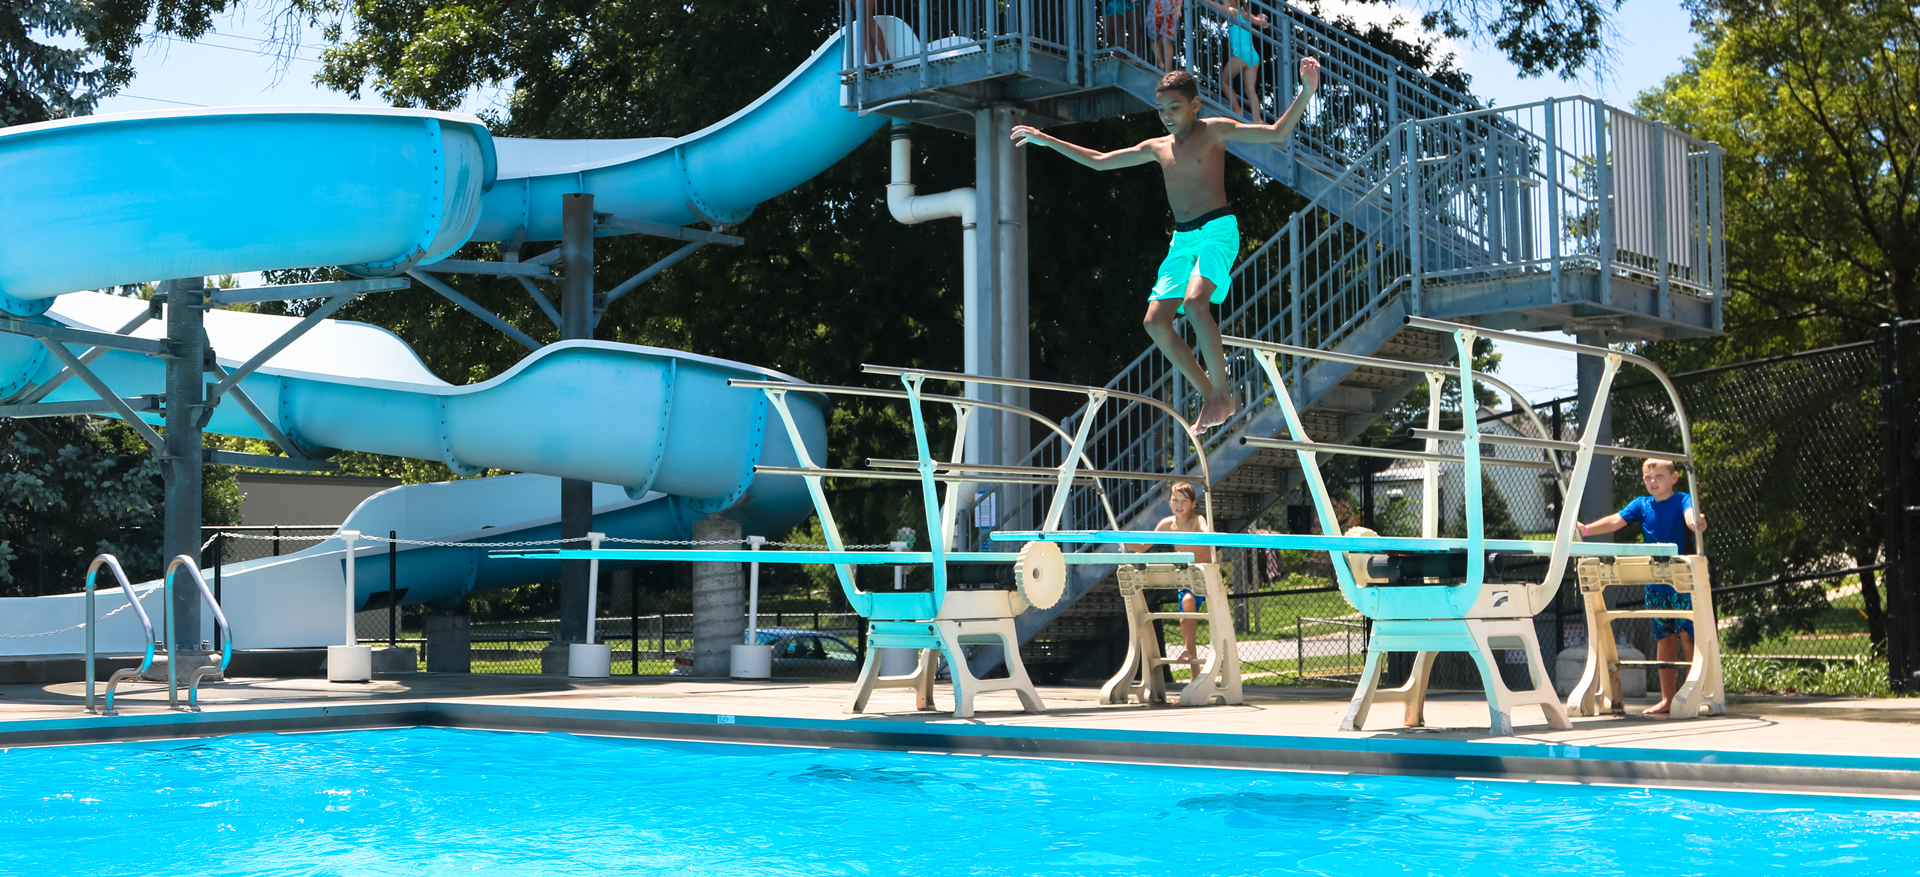 A young boy preparing to jump off the diving board at Mill Creek Swimming Pool.